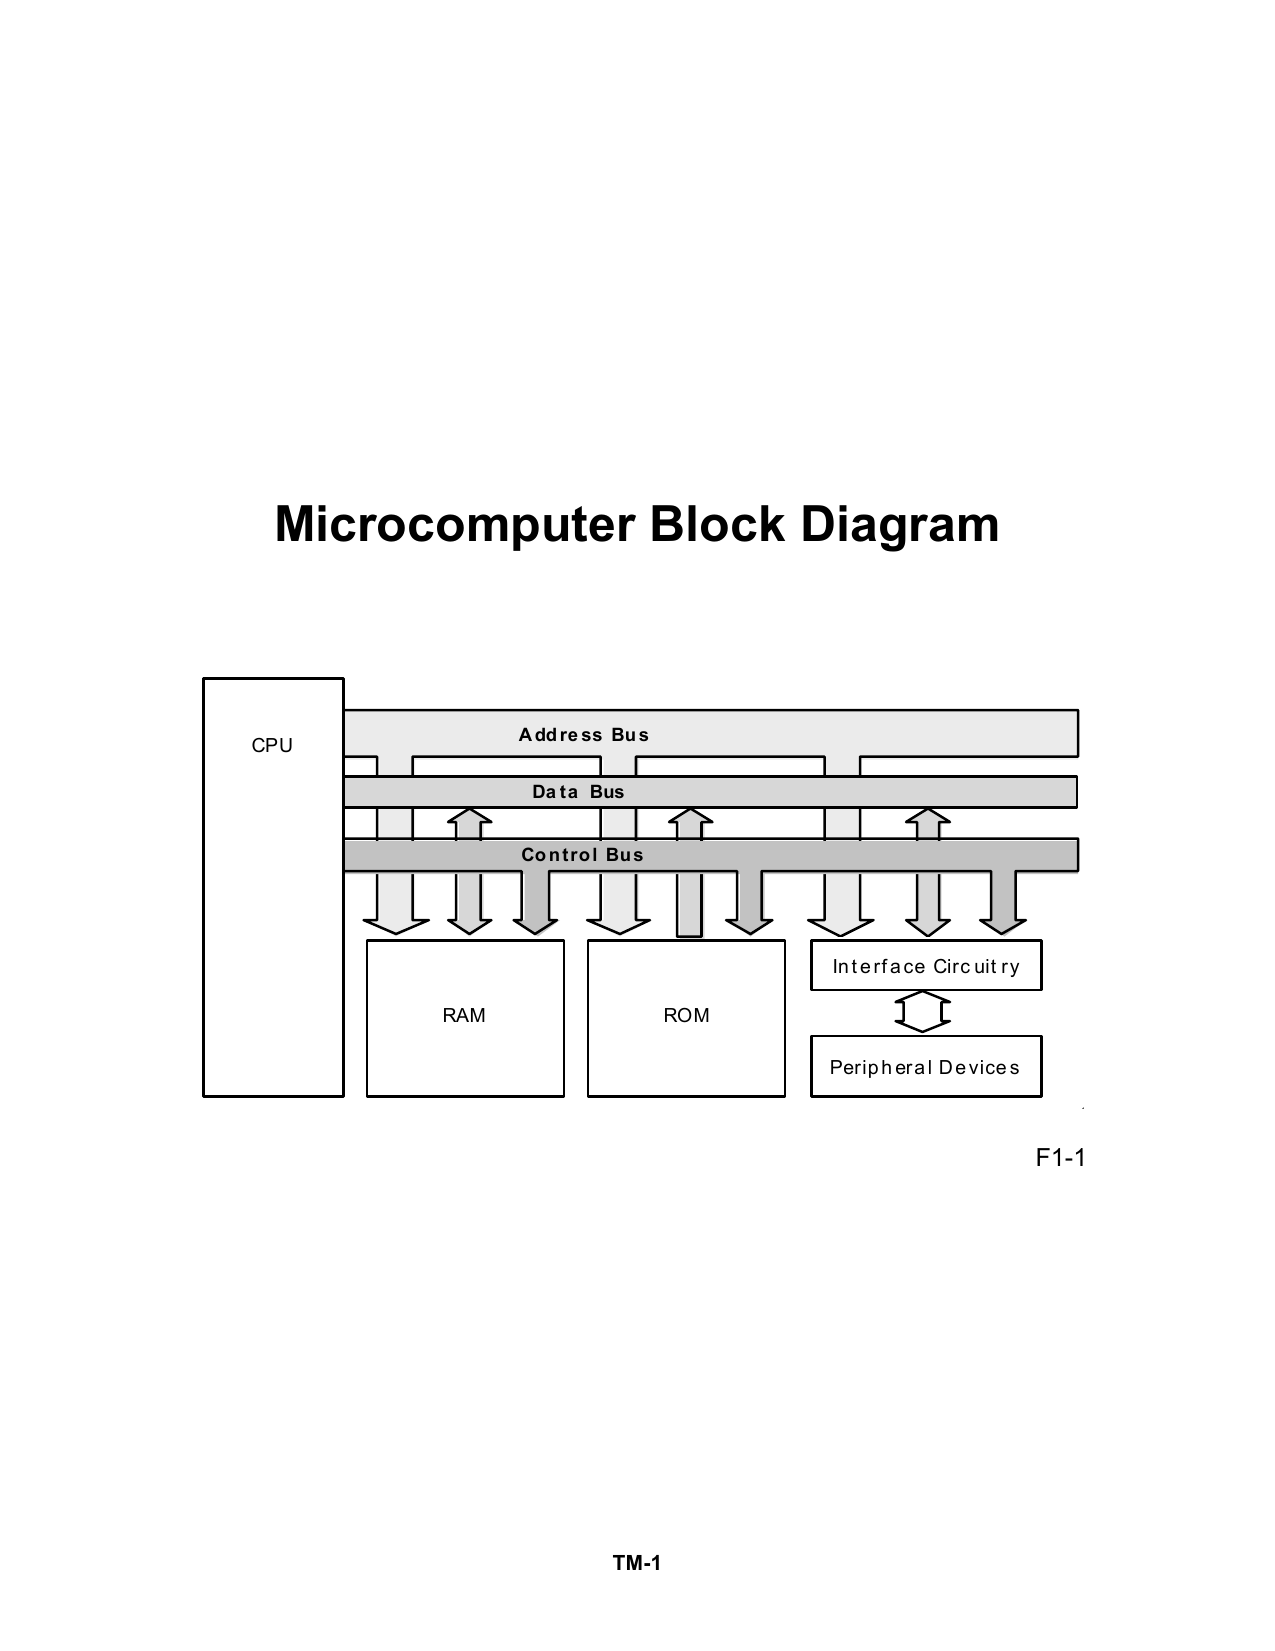 hight resolution of microcomputer block diagram a dd re ss bu s cpu da ta bus co n tro l bu s in t e rf a ce circ uit r y ram rom perip